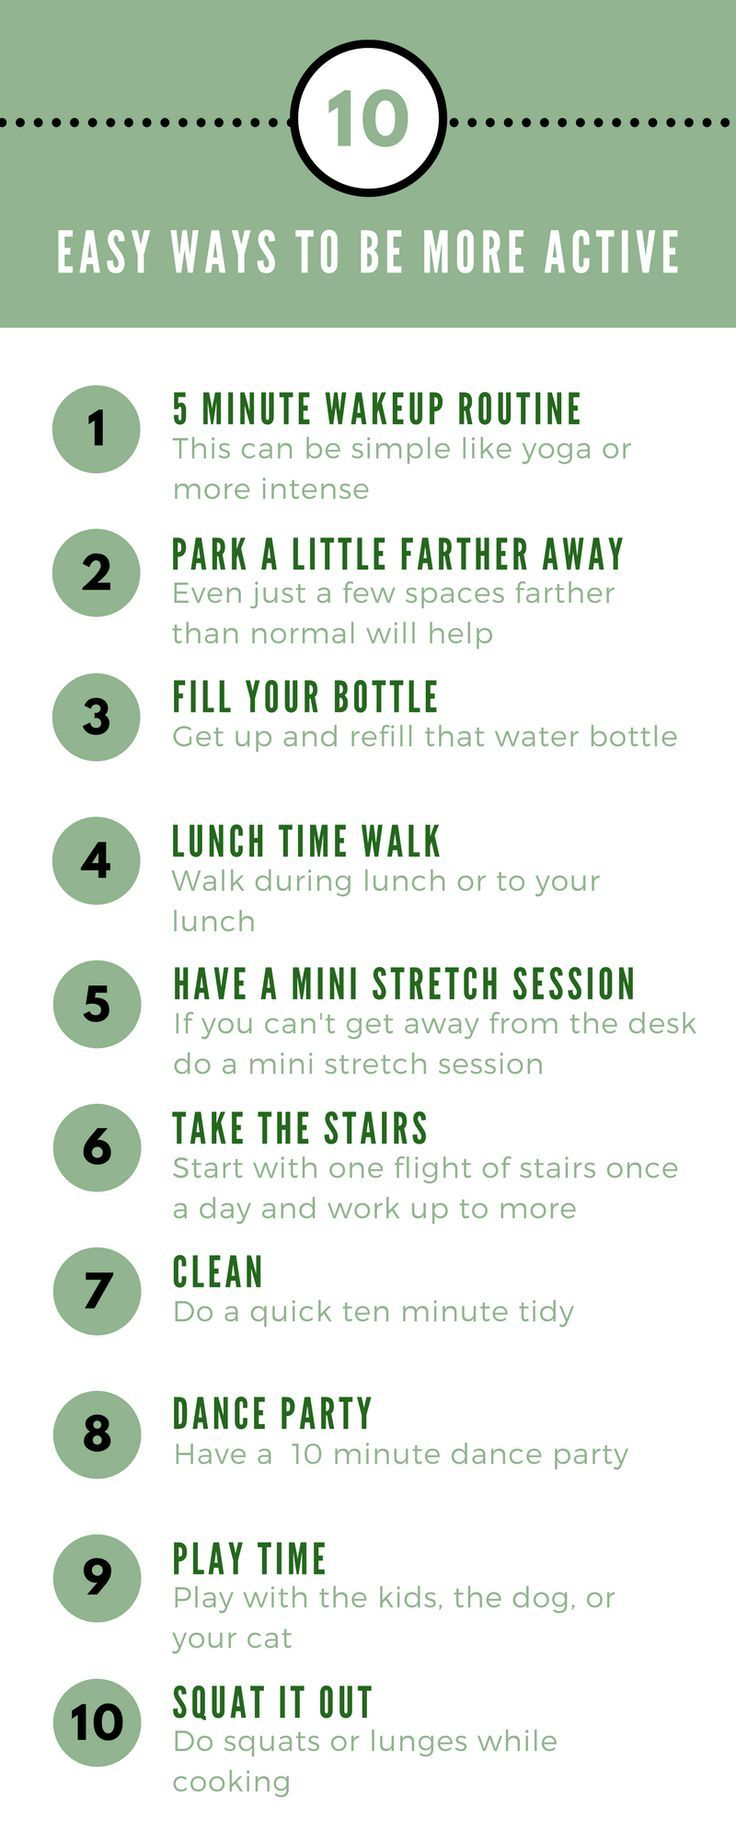 10 Easy Ways To Be More Active Health and fitness tips